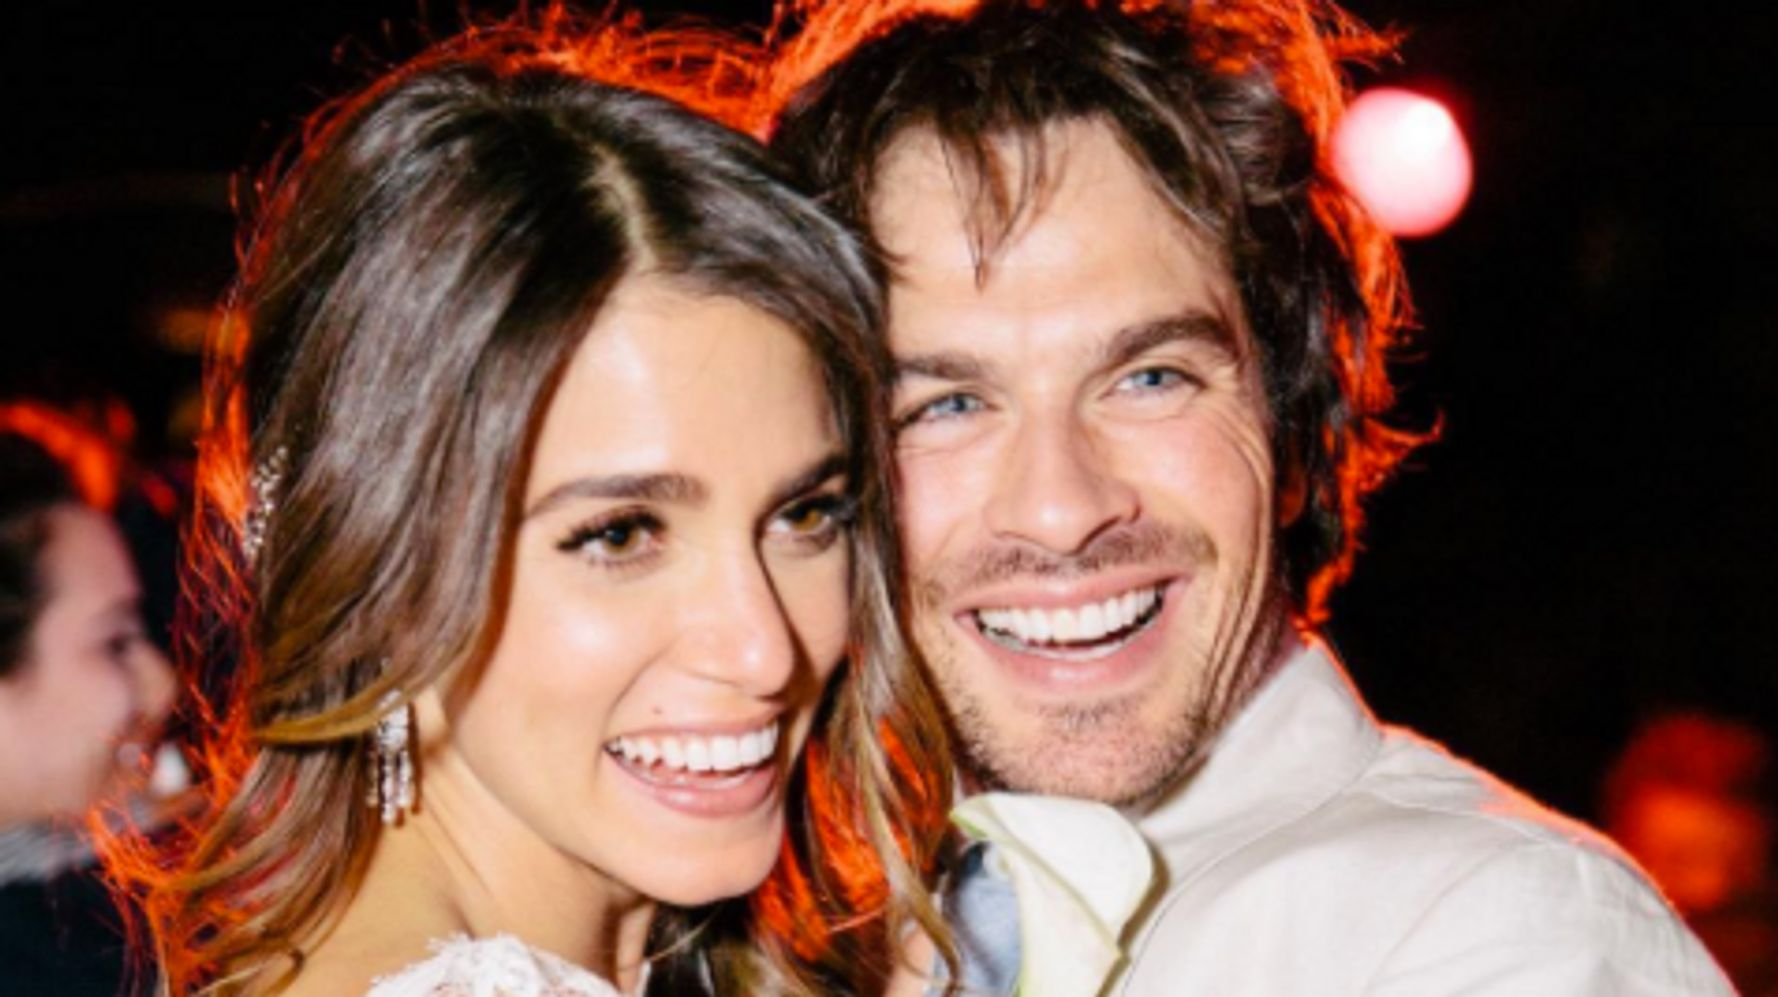 Ian Somerhalder And Nikki Reed Celebrate Wedding Anniversary With